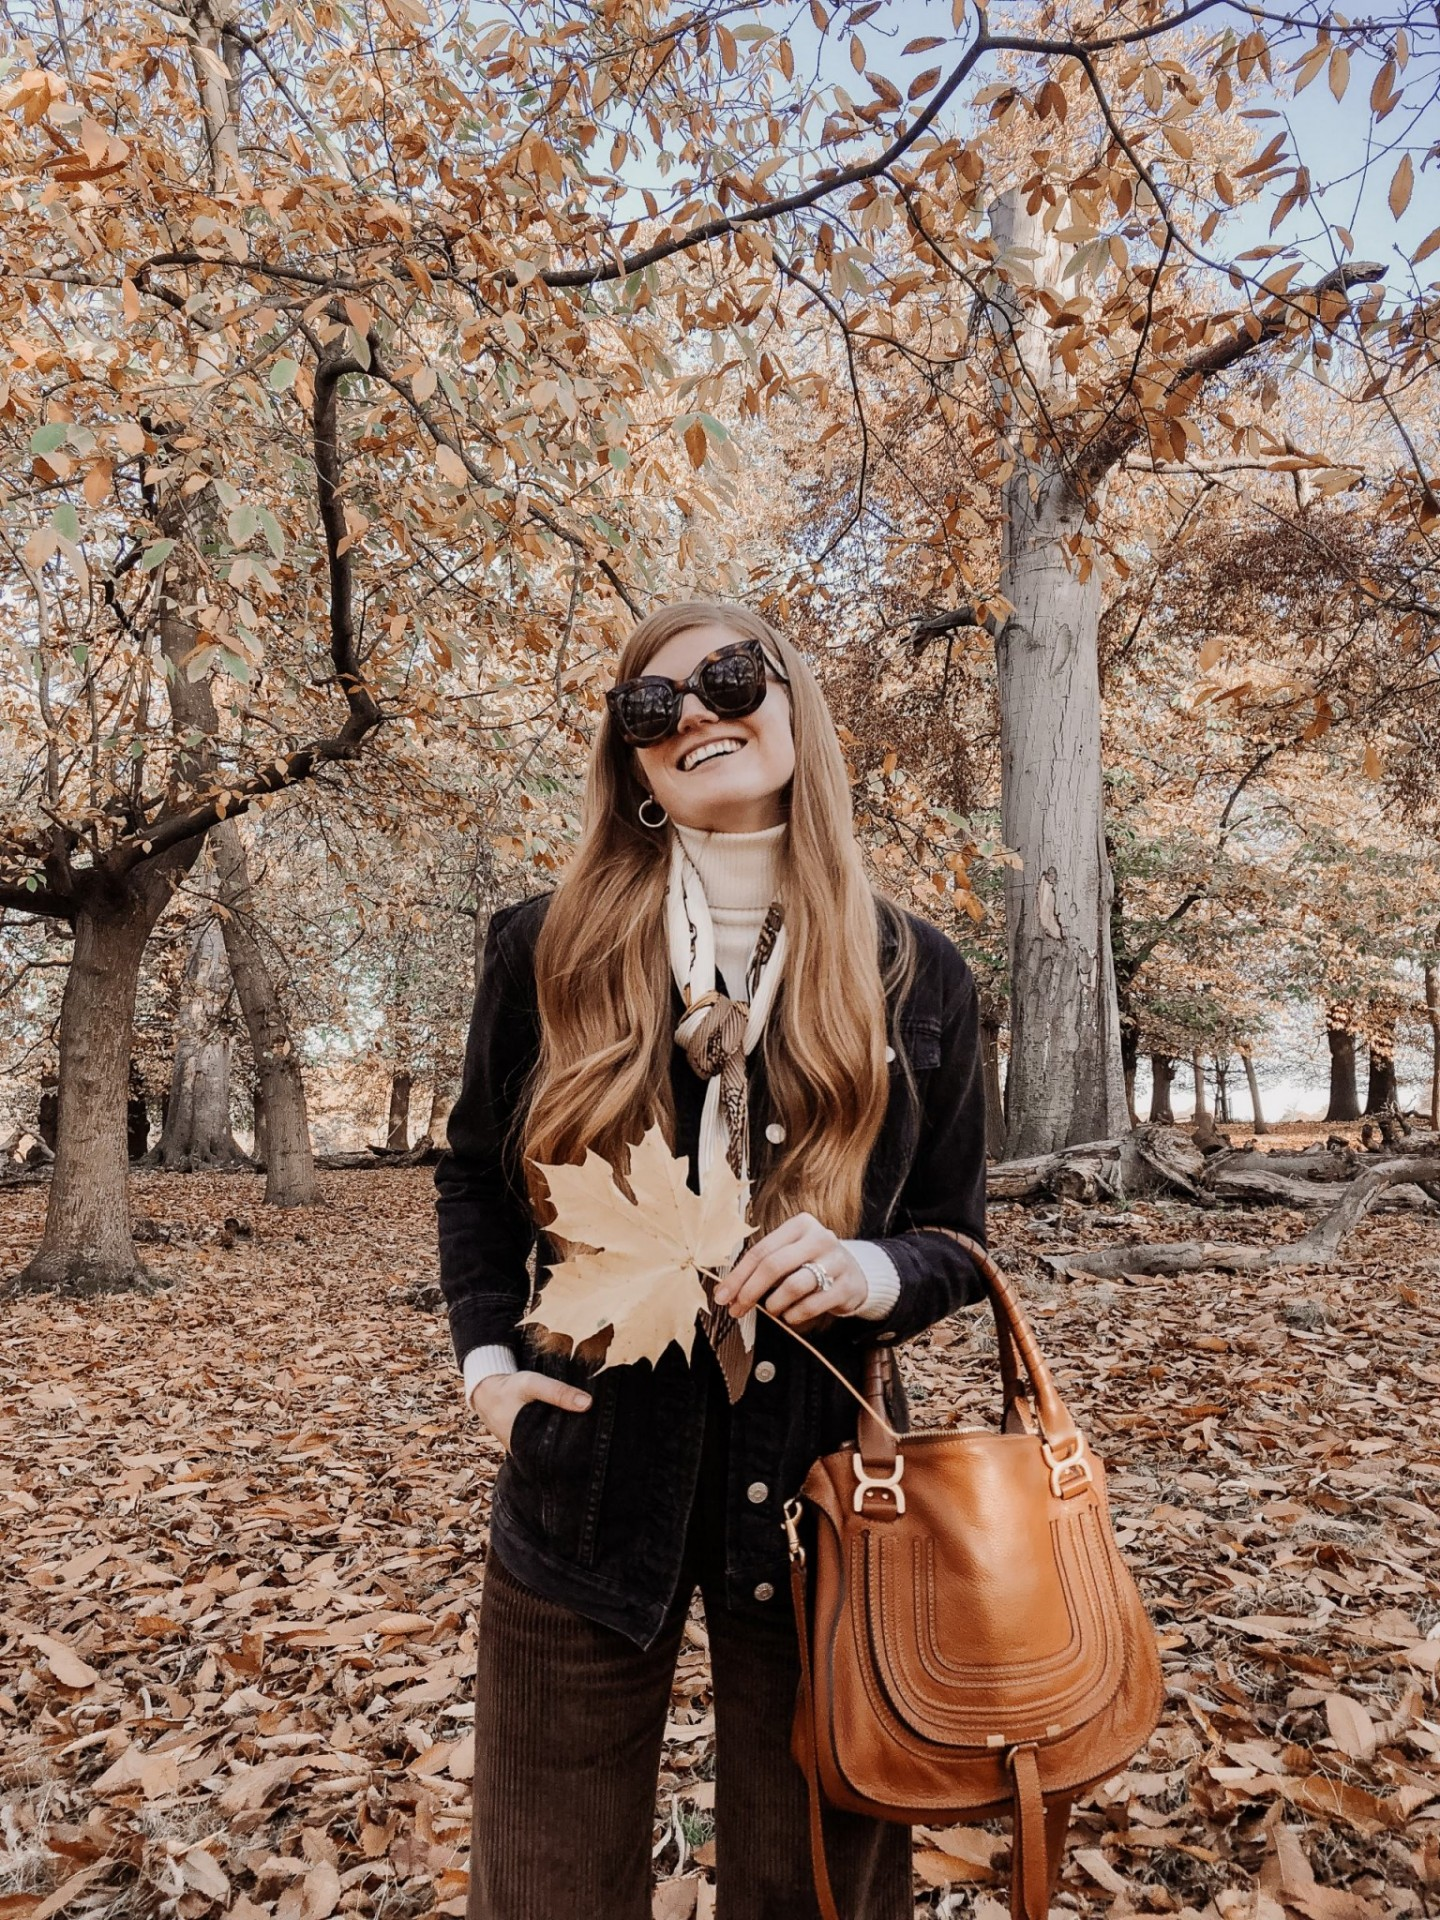 Lifestyle blogger Mollie Moore shares some autumn outfit inspo for 2019 | 5 Fall Fashion Outfits to Recreate This Season by popular fashion blogger, Mollie Moore: image of a woman outside wearing a Nordstrom McCoy Denim Jacket, Nordstrom Halogen Cashmere Turtleneck Sweater, Nordstrom Madewell Slim Emmett Wide Leg Crop Pants: Corduroy Edition, Nordstrom Chloe 'Medium Marcie' Leather Satchel, and Nordstrom Echo Heritage Chain Silk Scarf.